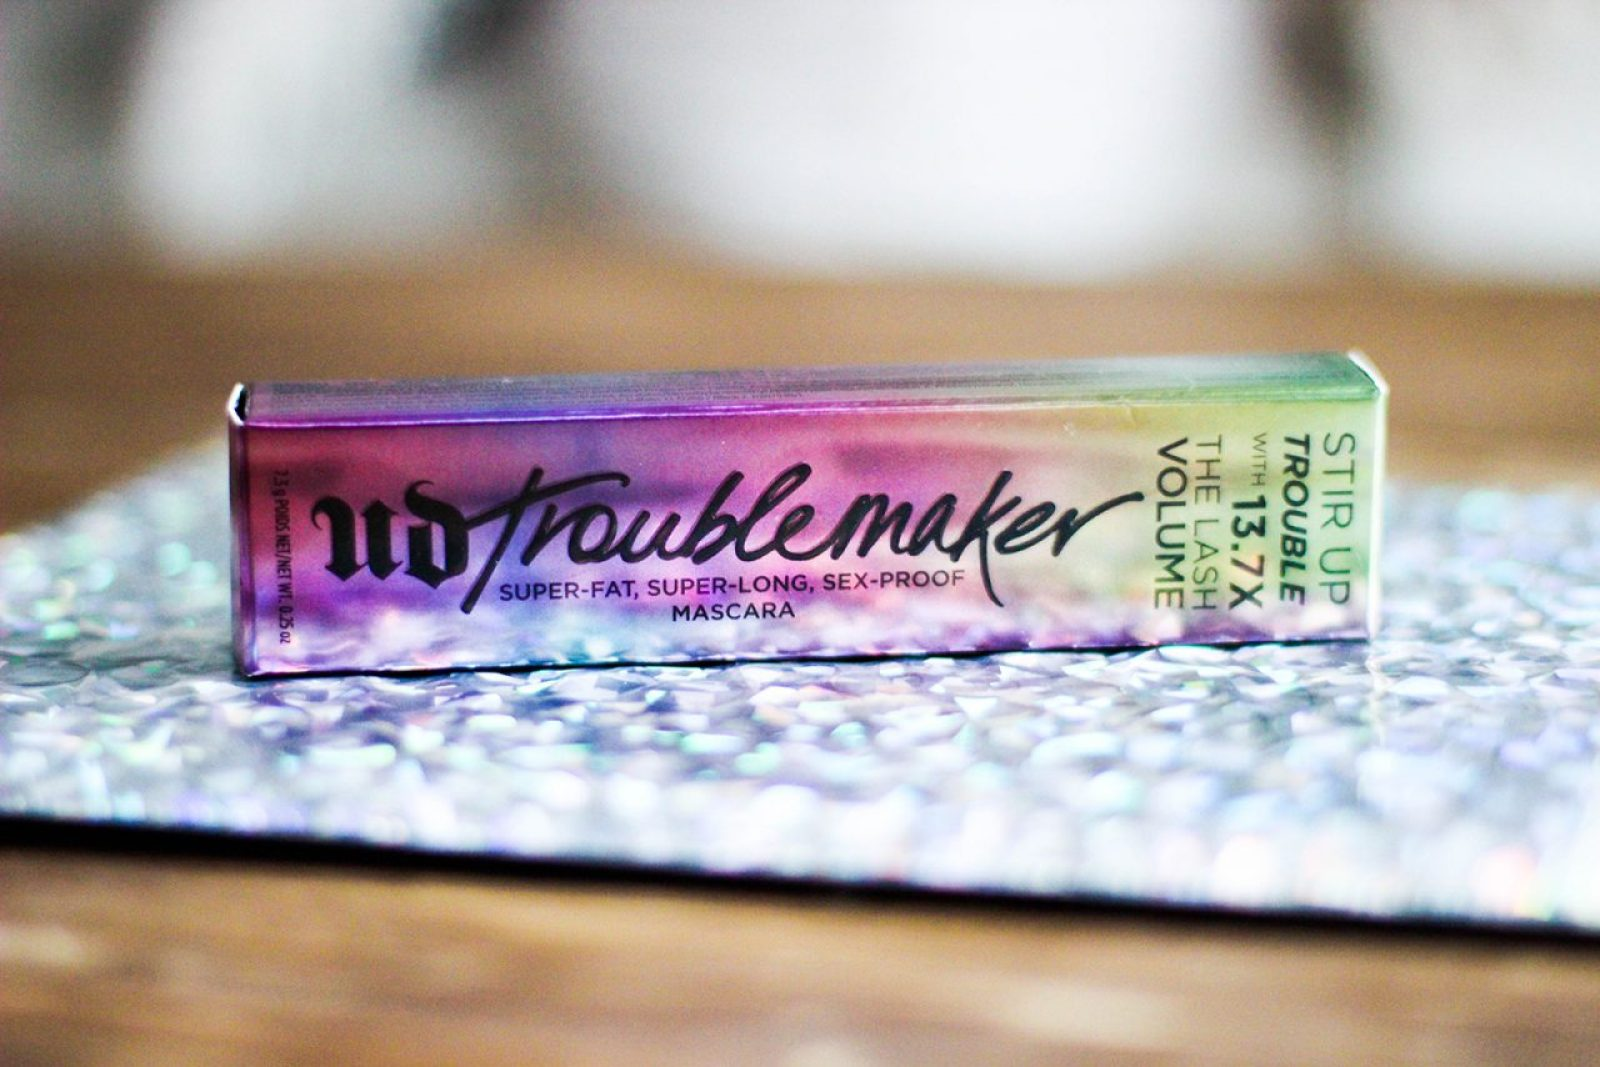 URBAN DECAY Troublemaker Mascara-1